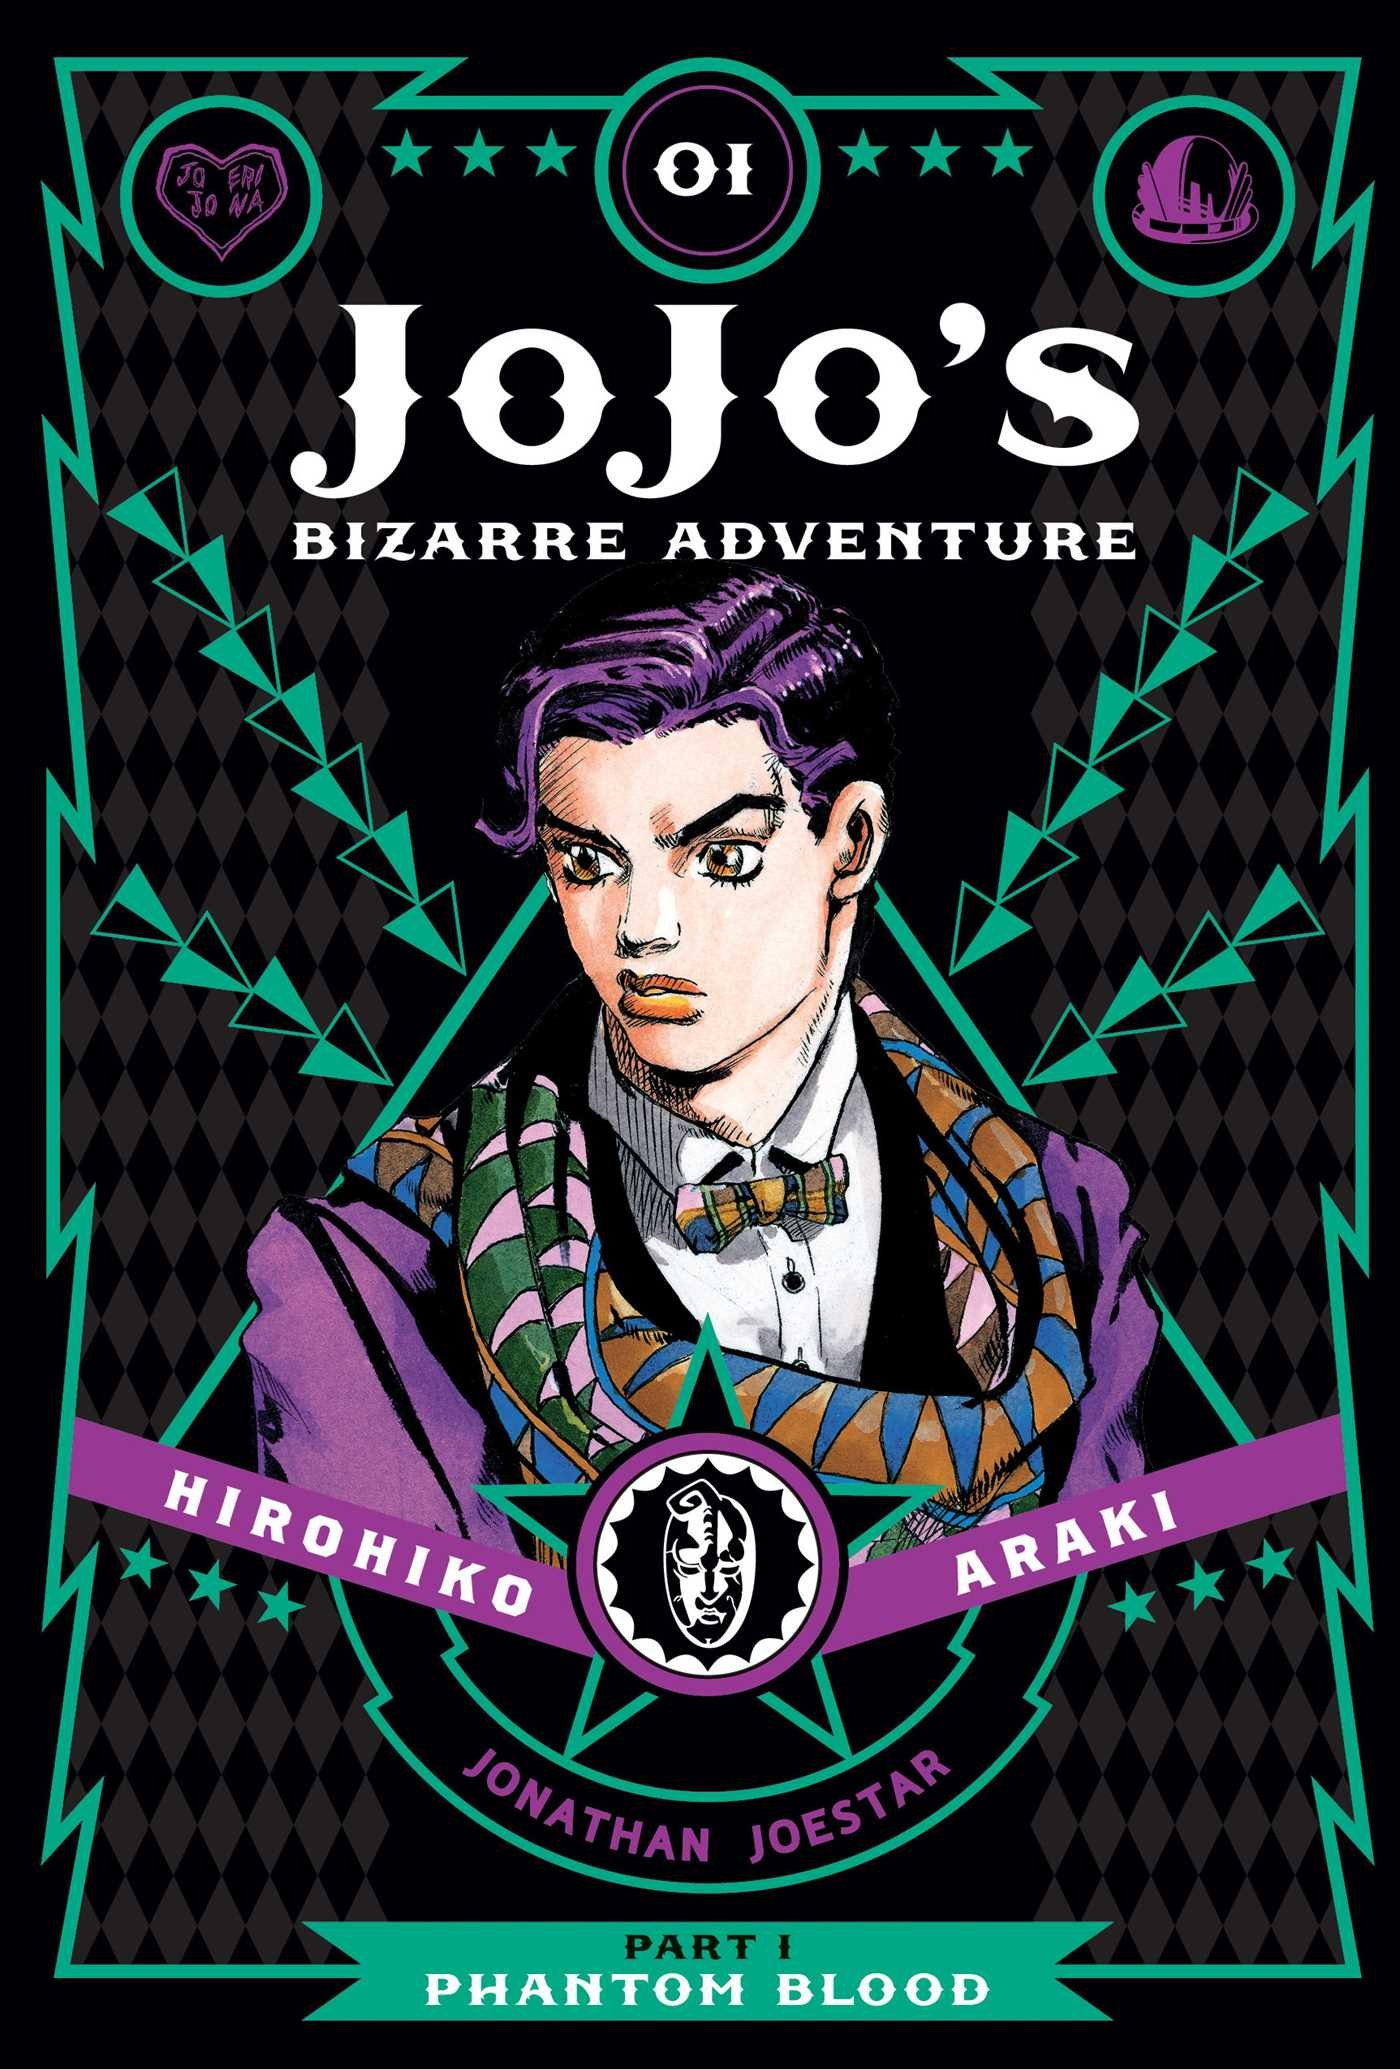 Manga Review: JoJo's Bizarre Adventure vol. 1